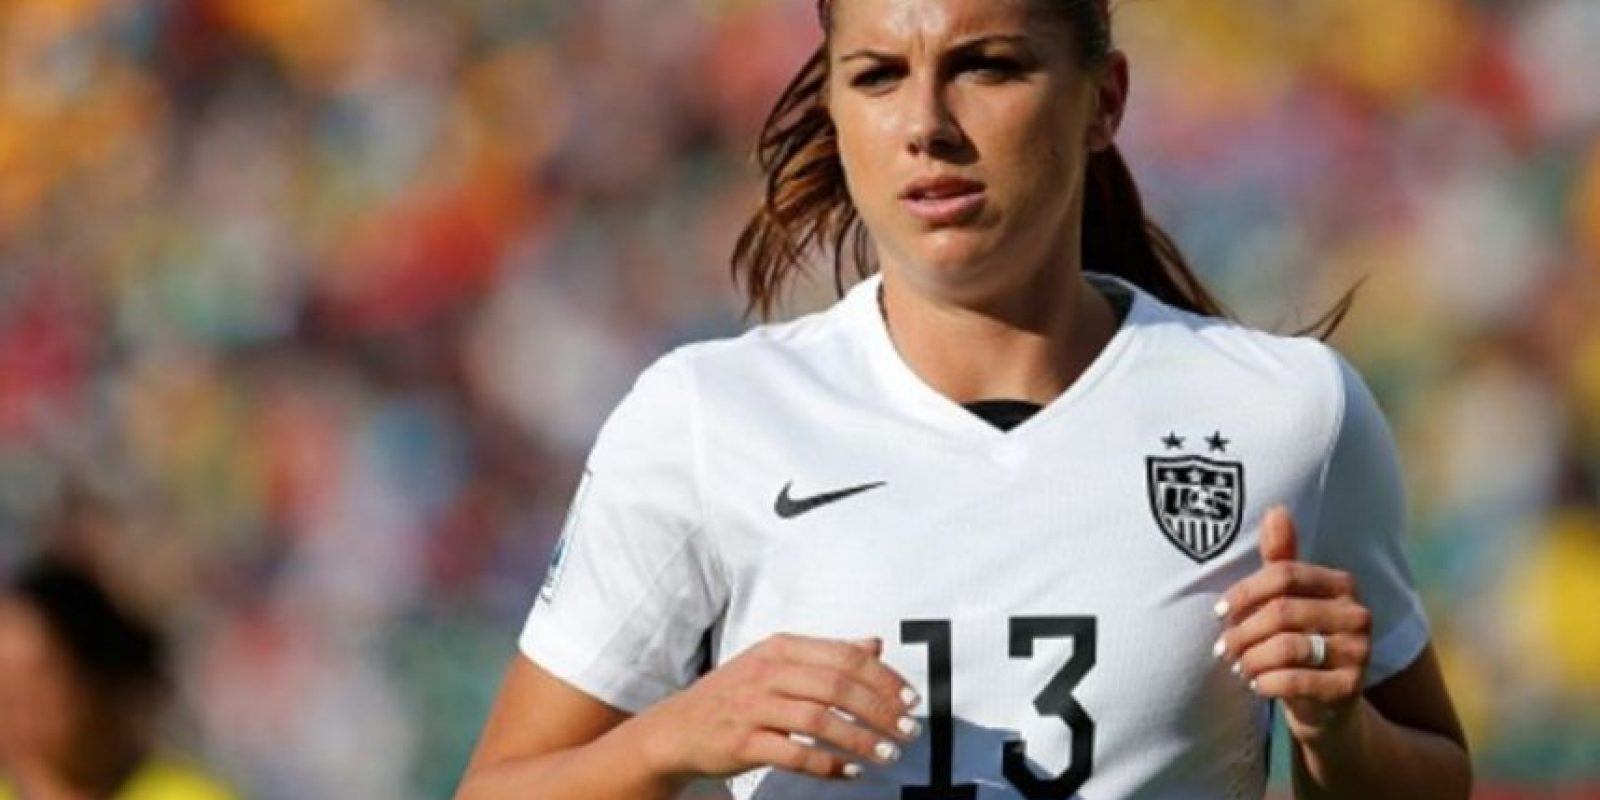 La estadounidense Alex Morgan juega en el Portland Thorns FC. Foto: Getty Images